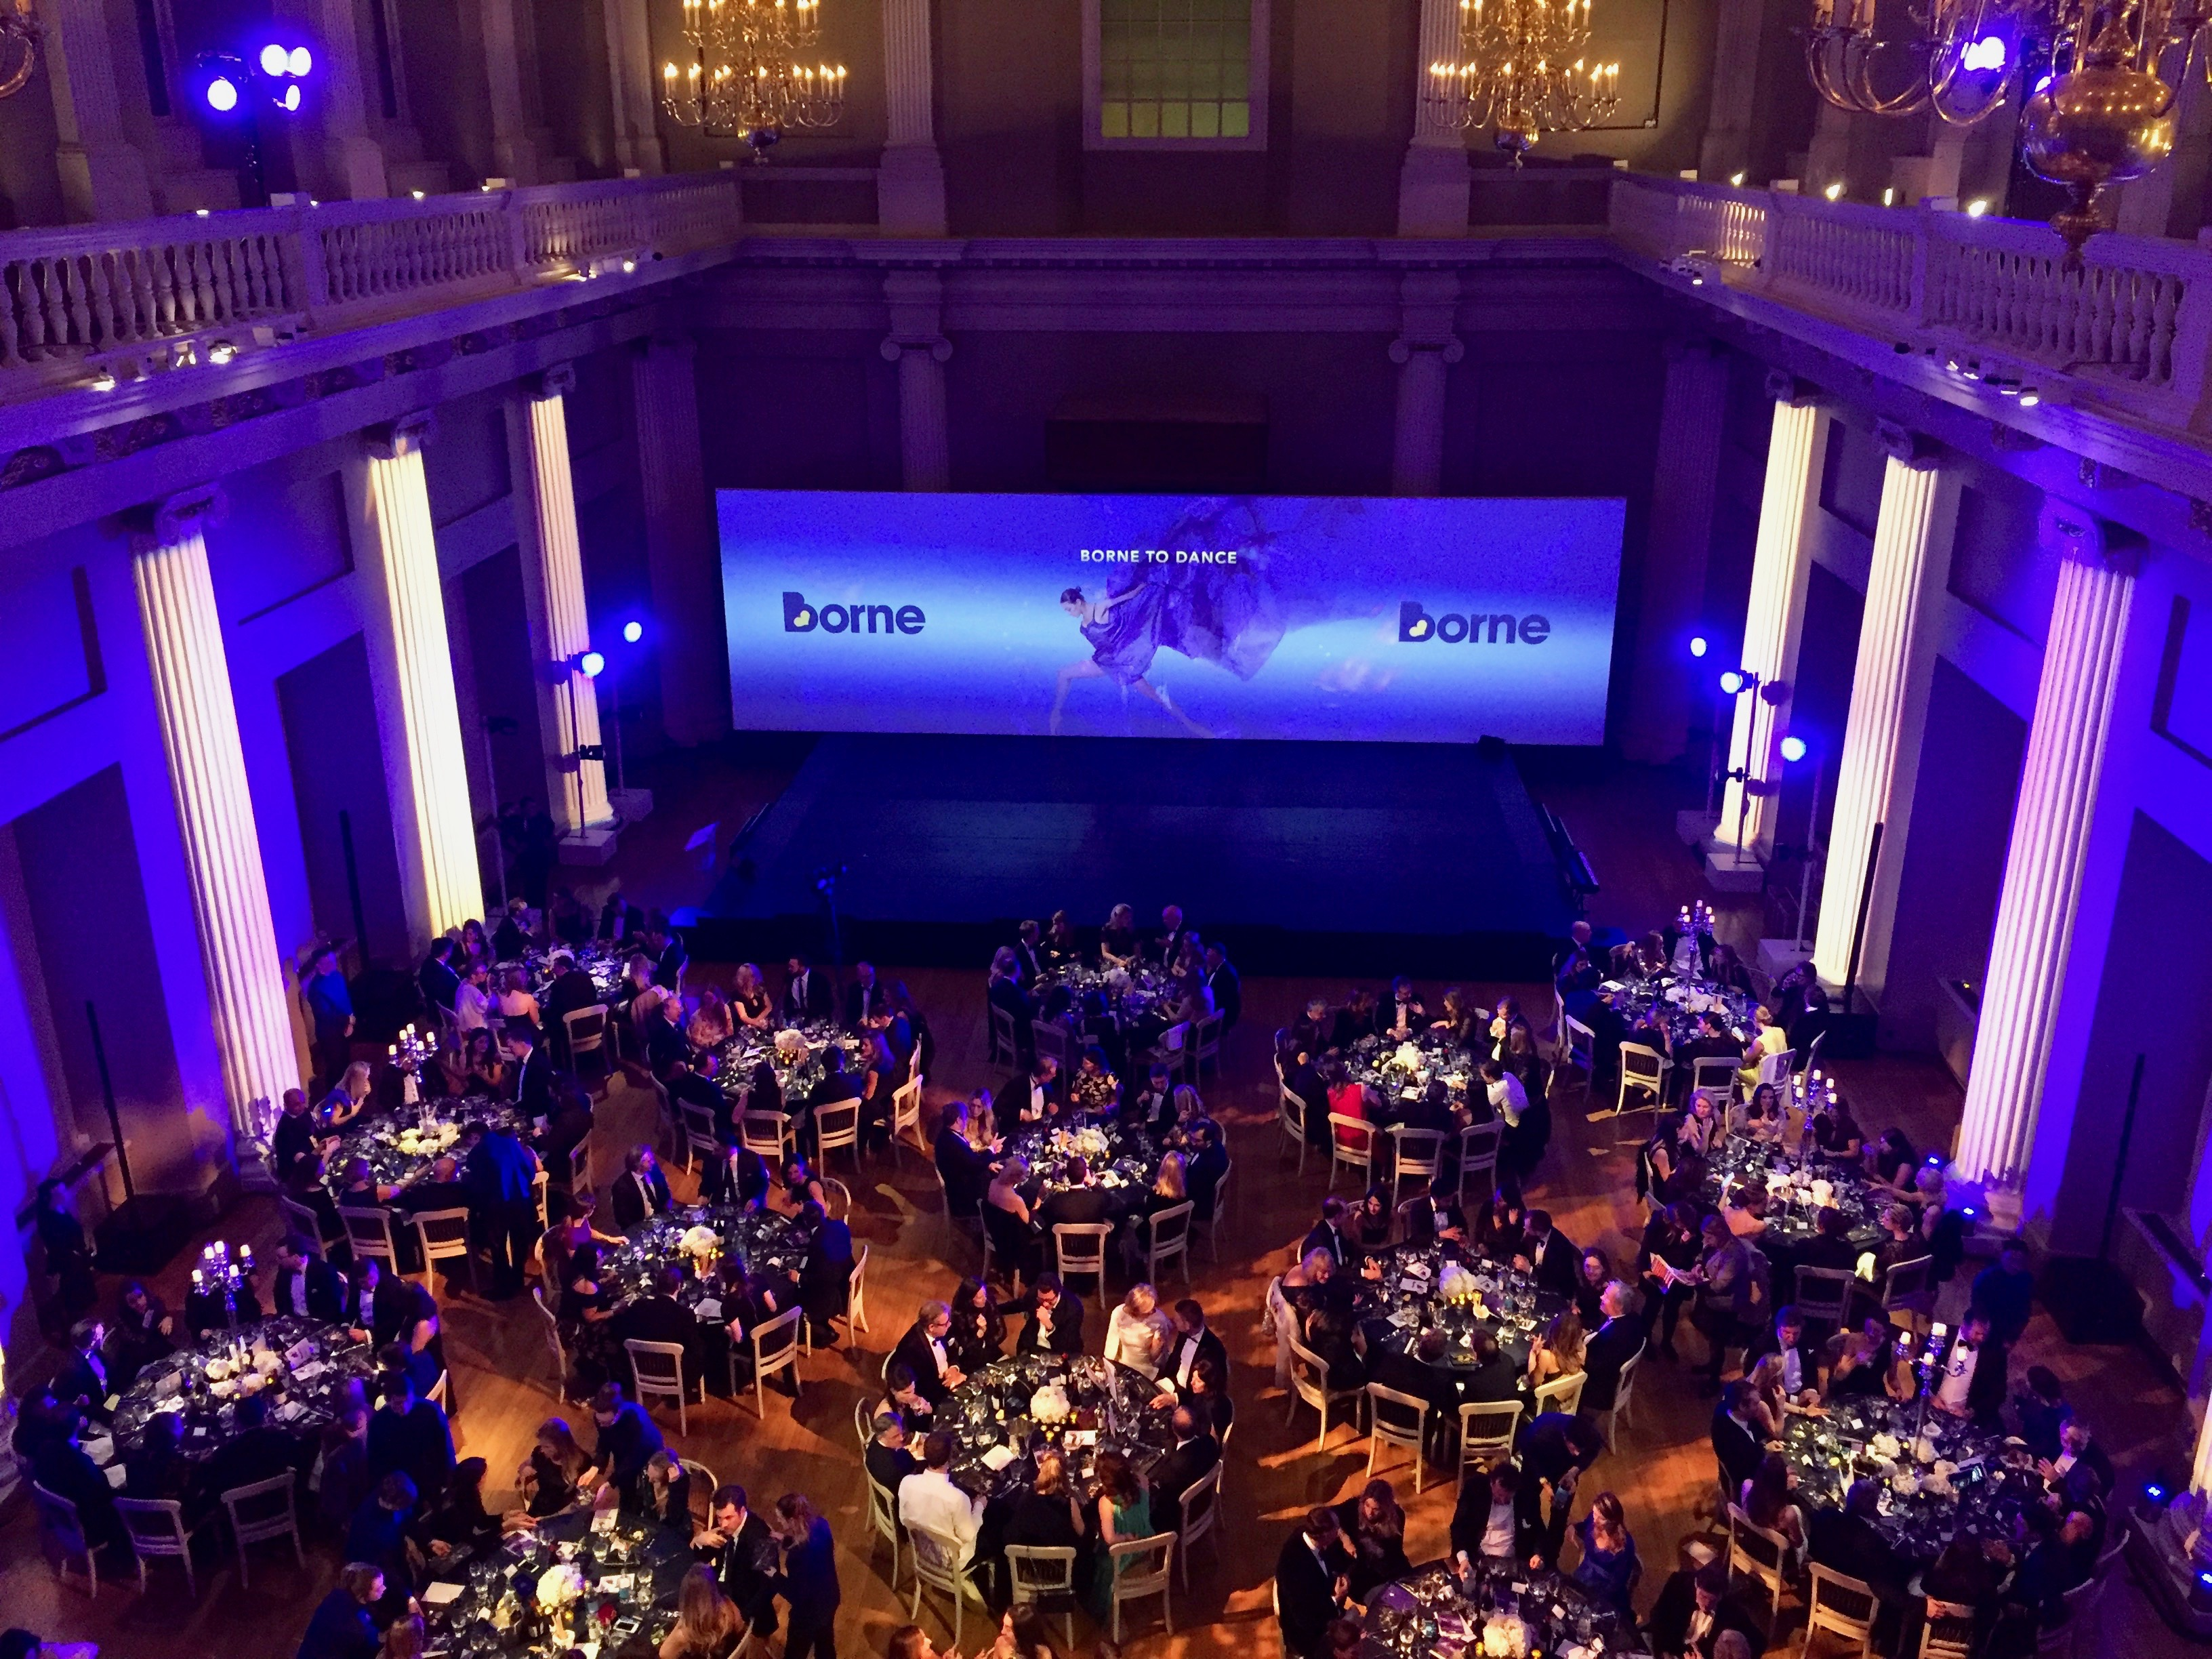 The Borne Foundation - Banqueting House.